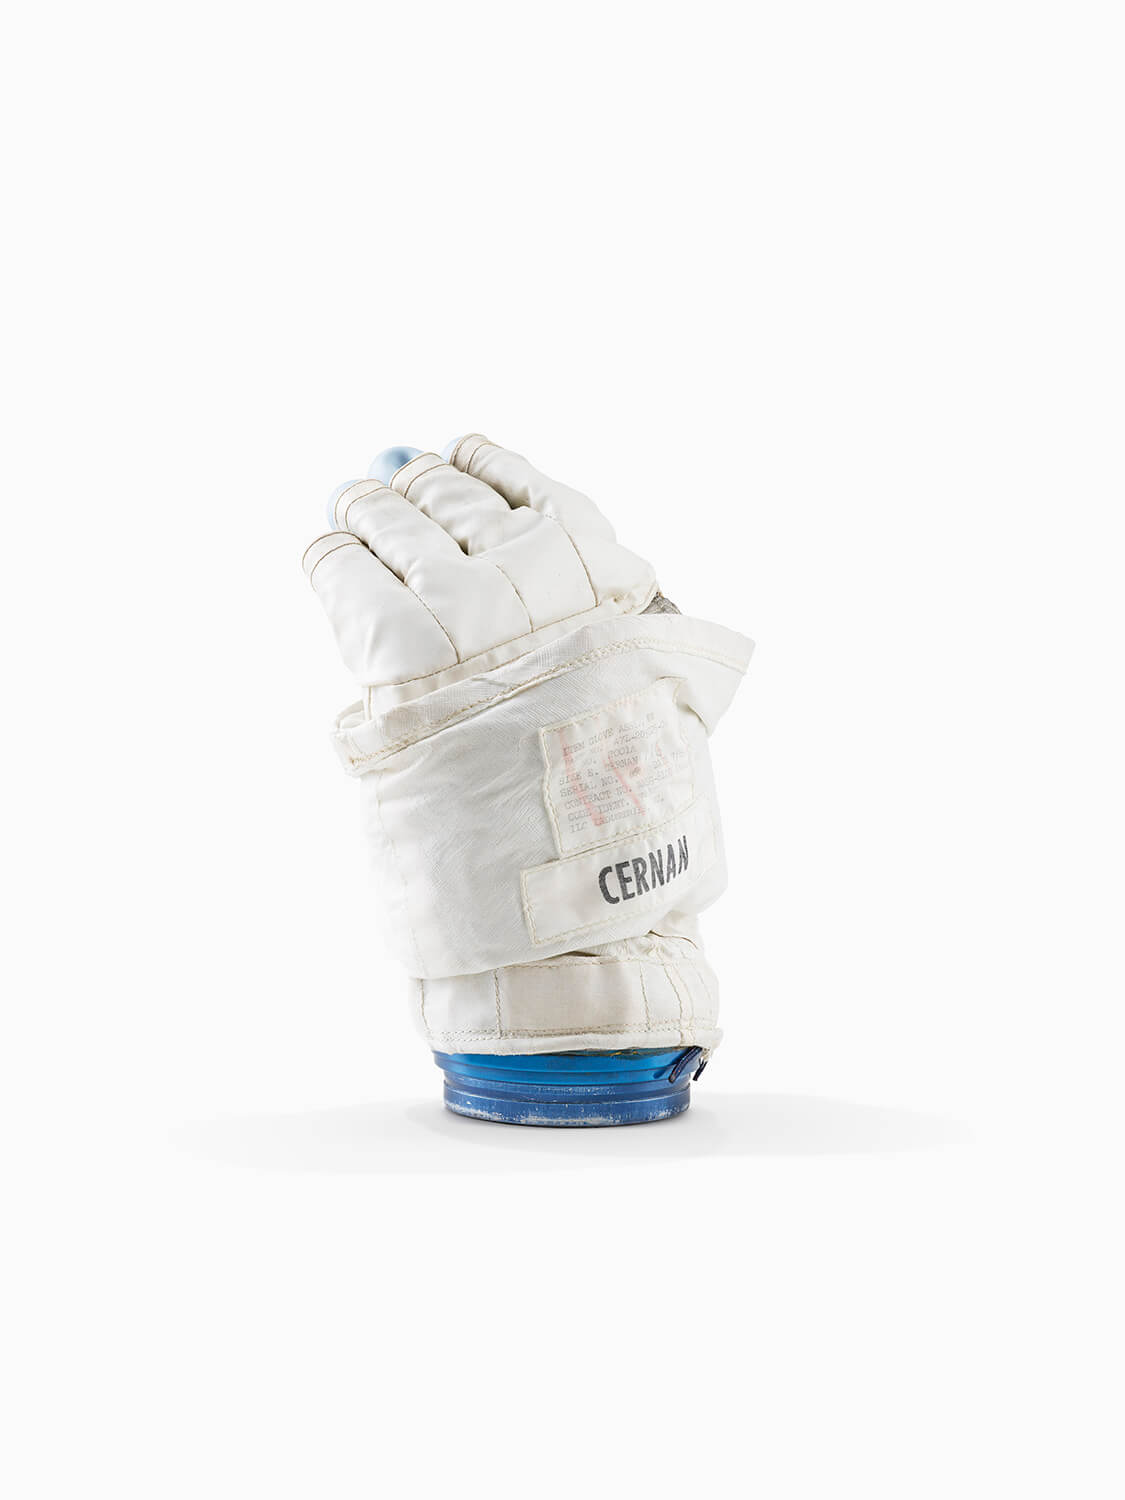 GENE CERNAN'S APOLLO A7L SPACE SUIT TRAINING GLOVE - JOHNSON SPACE CENTRE